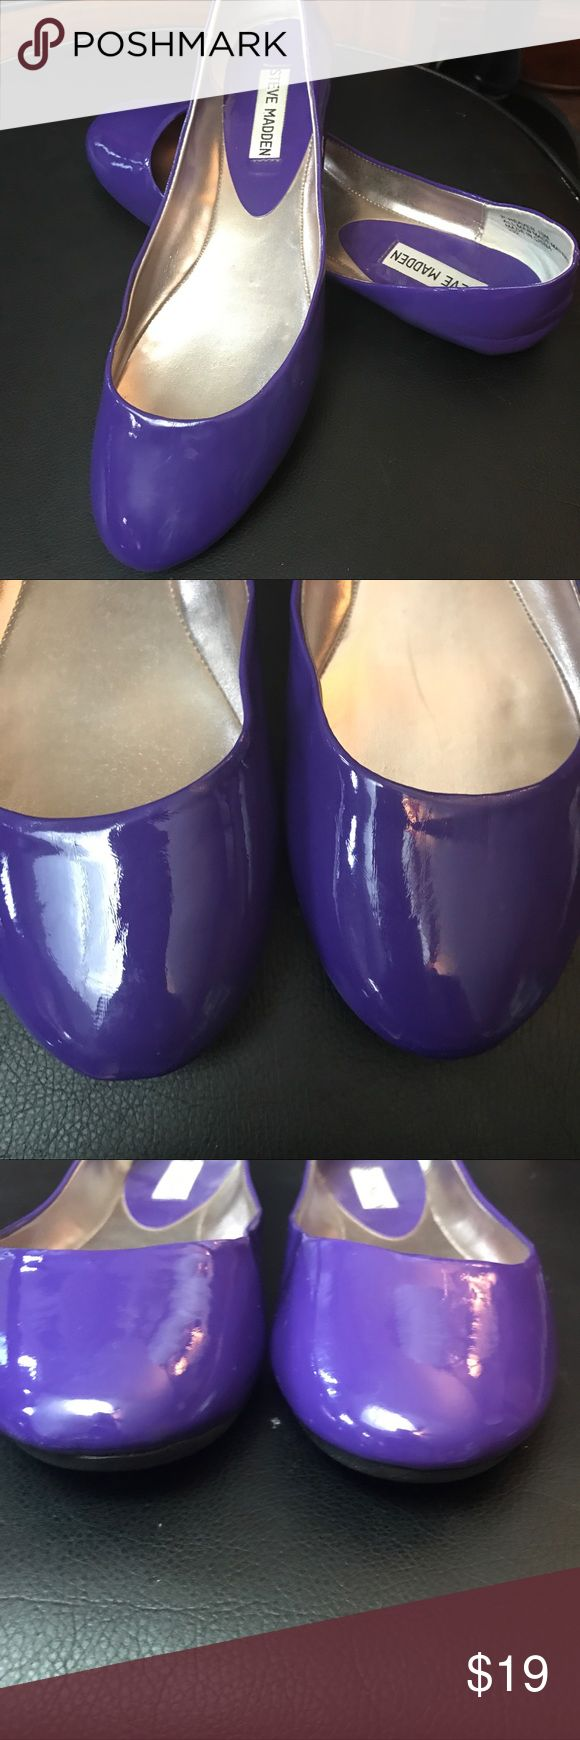 "Steve Madden slip on flats patent Leather purple Size 10M Steve Madden     ⭐️Faux Patent Leather ⭐️10.5"" length  ⭐️condition: EUC/NWOT  ⭐️flaws?: None ❤️ BUNDLE UP TO 5 POUNDS in the flat shipping price of $7.20!!  ❤️Smoke free dog friendly home. ❤️️Ask me about other items in this size! ❤️️ALWAYS OPEN TO CLOSE/FAIR OFFERS Thank you for shopping with ""❤️️WEARSHARECONSIGNMENT❤️️""  @WearShareConsignment for IG/FB Steve Madden Shoes Flats & Loafers"